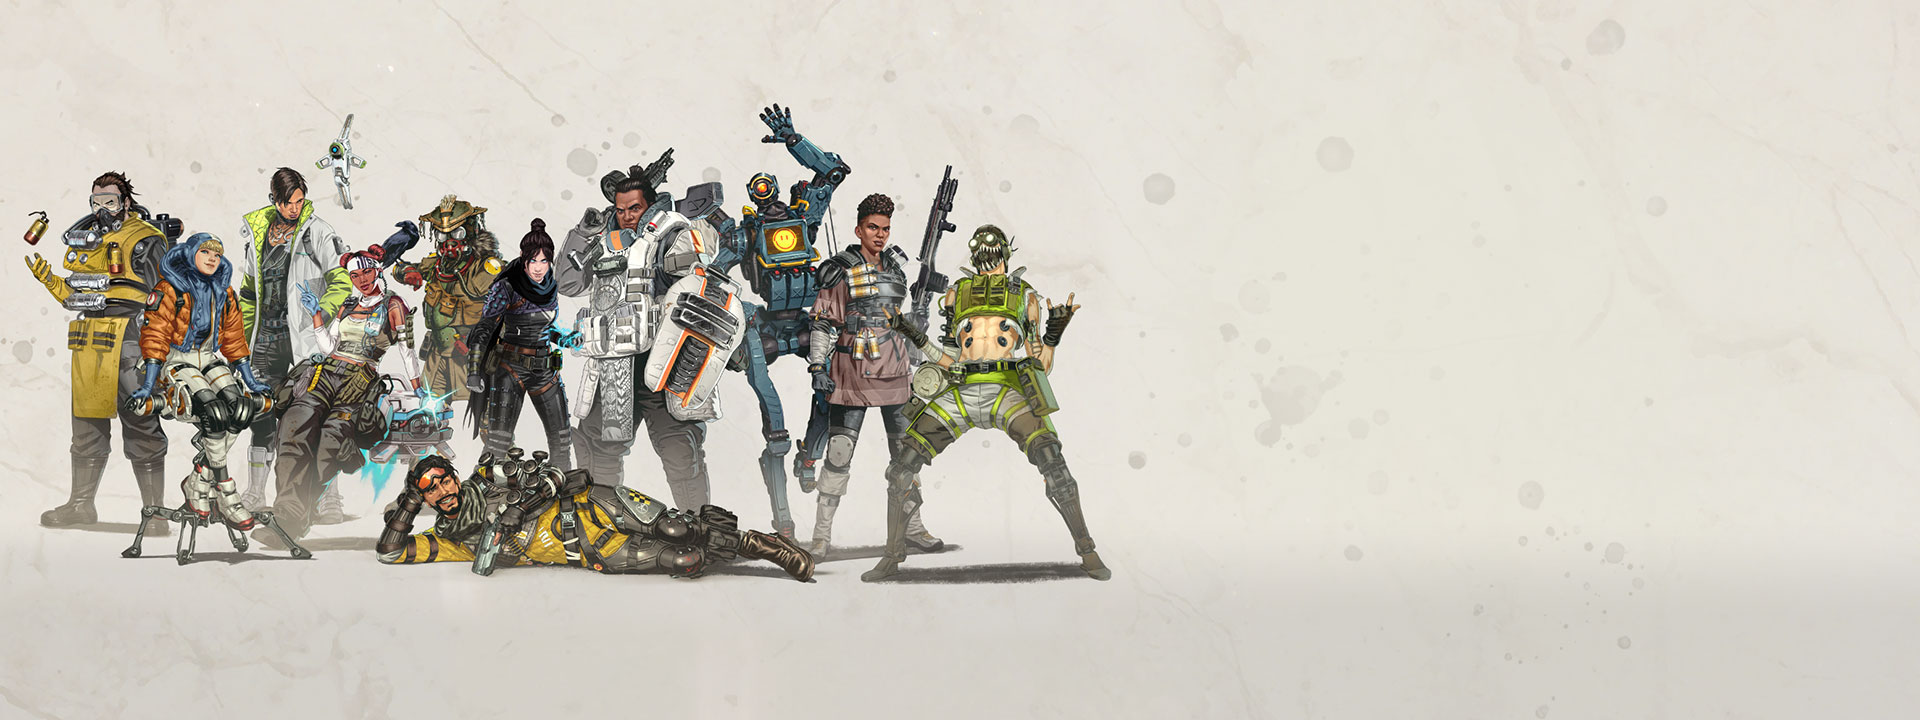 Several Apex Legends characters standing and posing